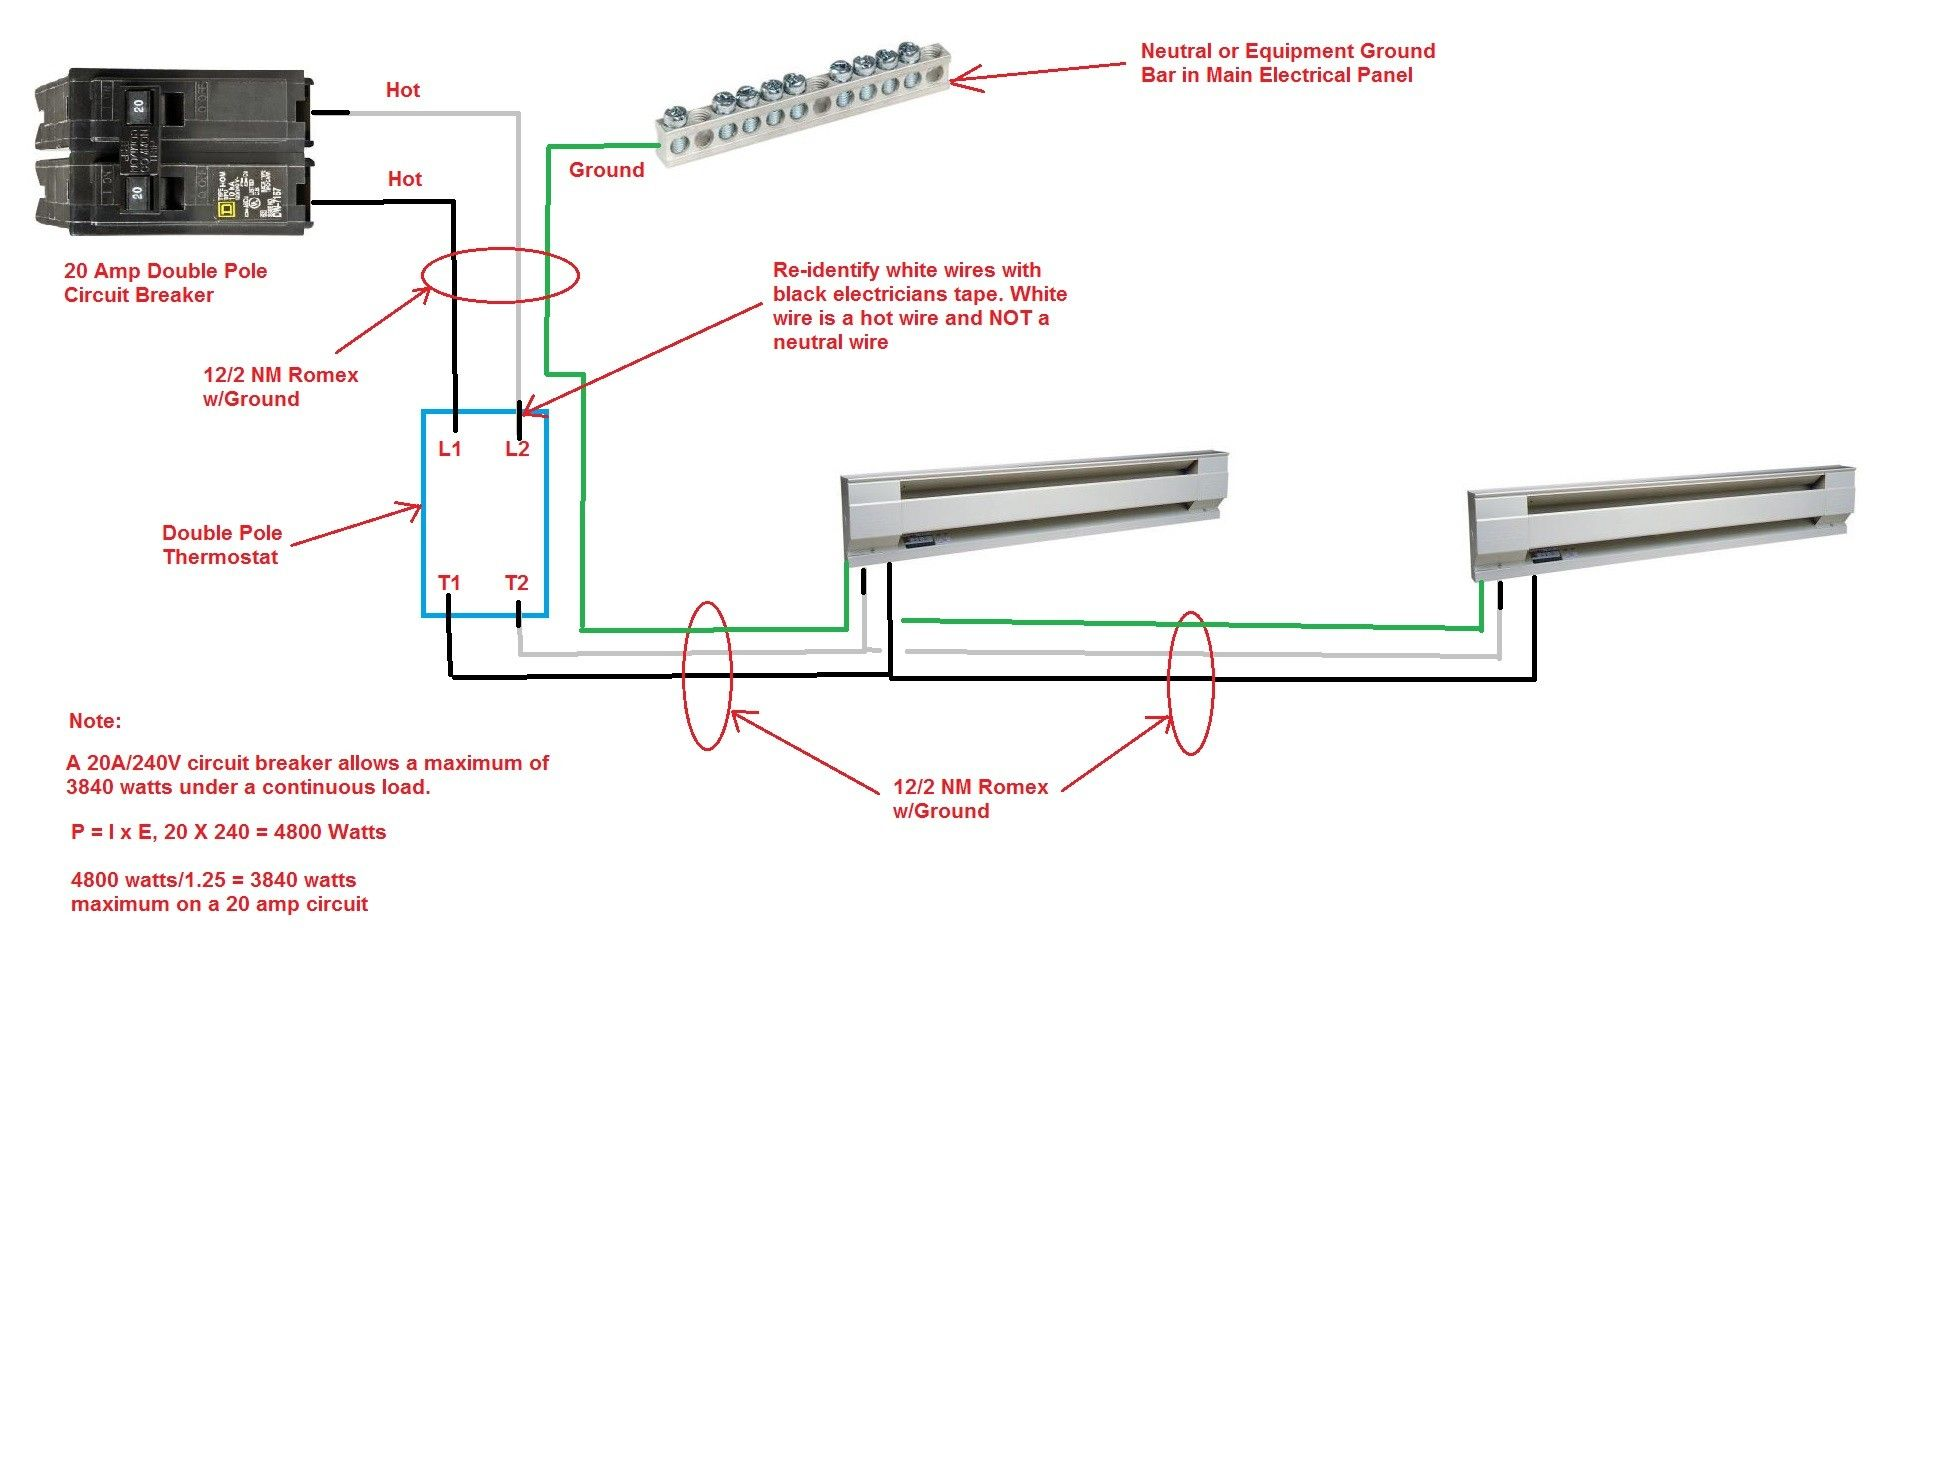 Wiring Diagram For Fahrenheat Electric Baseboard Heater Diagram Diagramtemplate Diagramsample Check More At Https Servisi Co Wiring Diagram For Fahr Cadetes